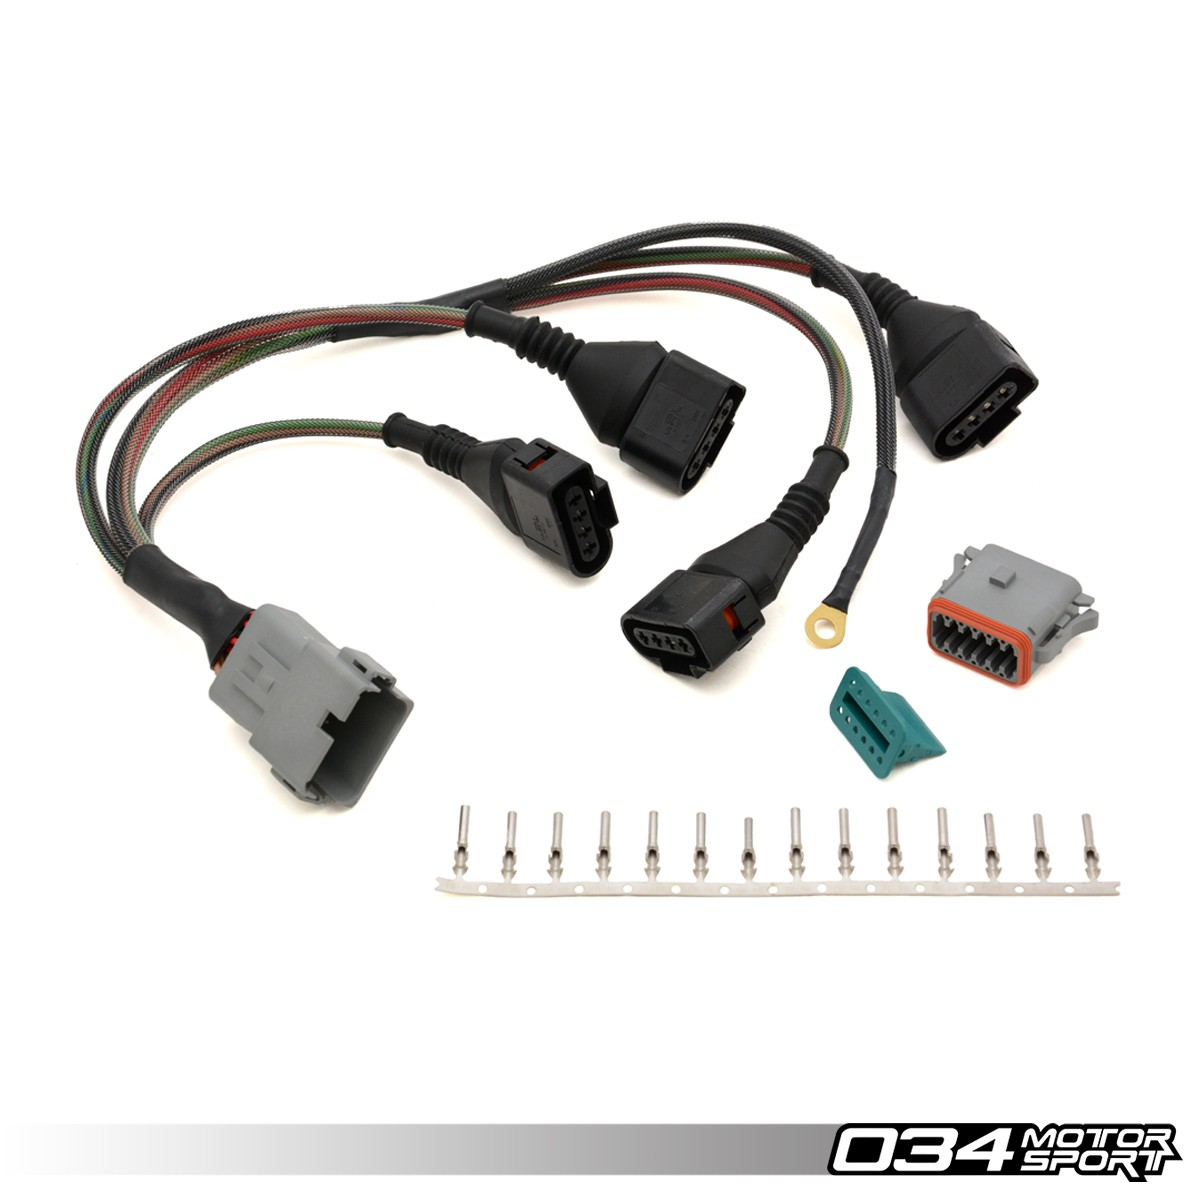 hight resolution of repair update harness audi volkswagen 1 8t with 4 wire coils 034 1 8t head 1 8t wire harness